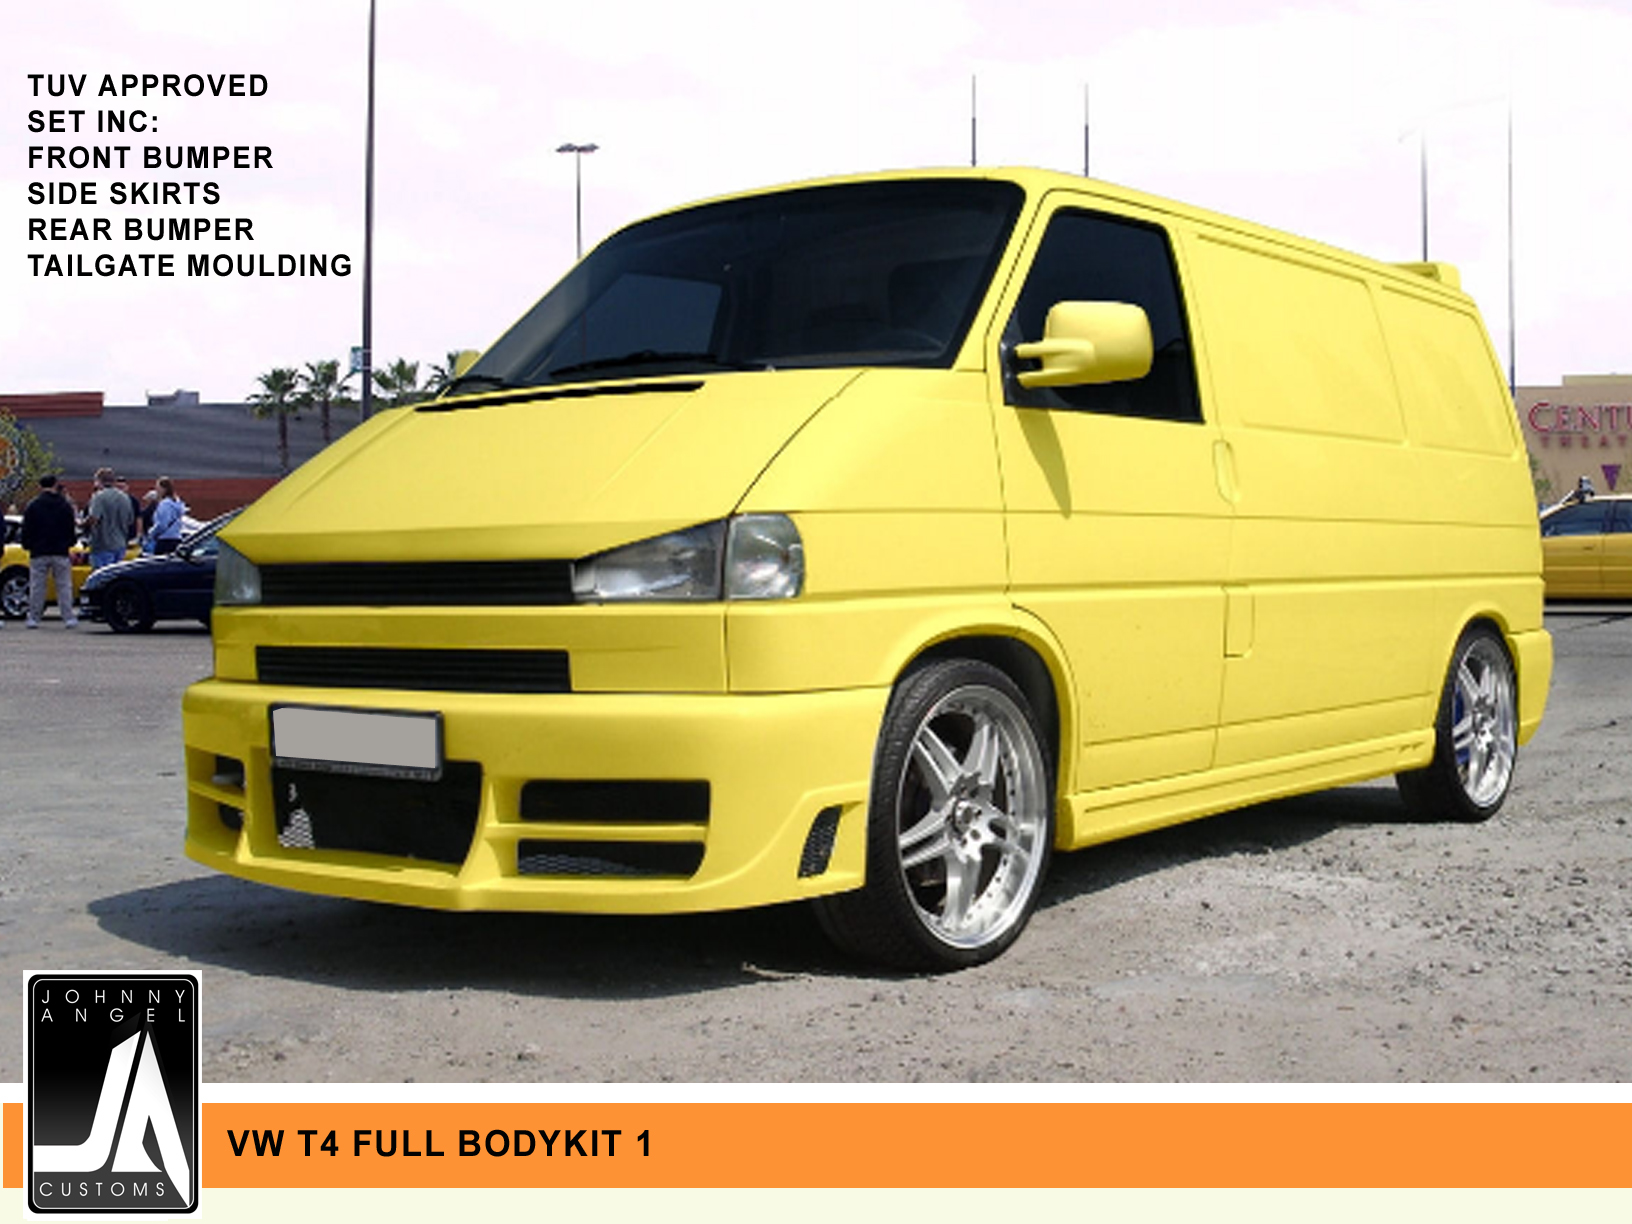 VW T4 FULL BODYKIT 1  Johnny Angel Customs pic 1